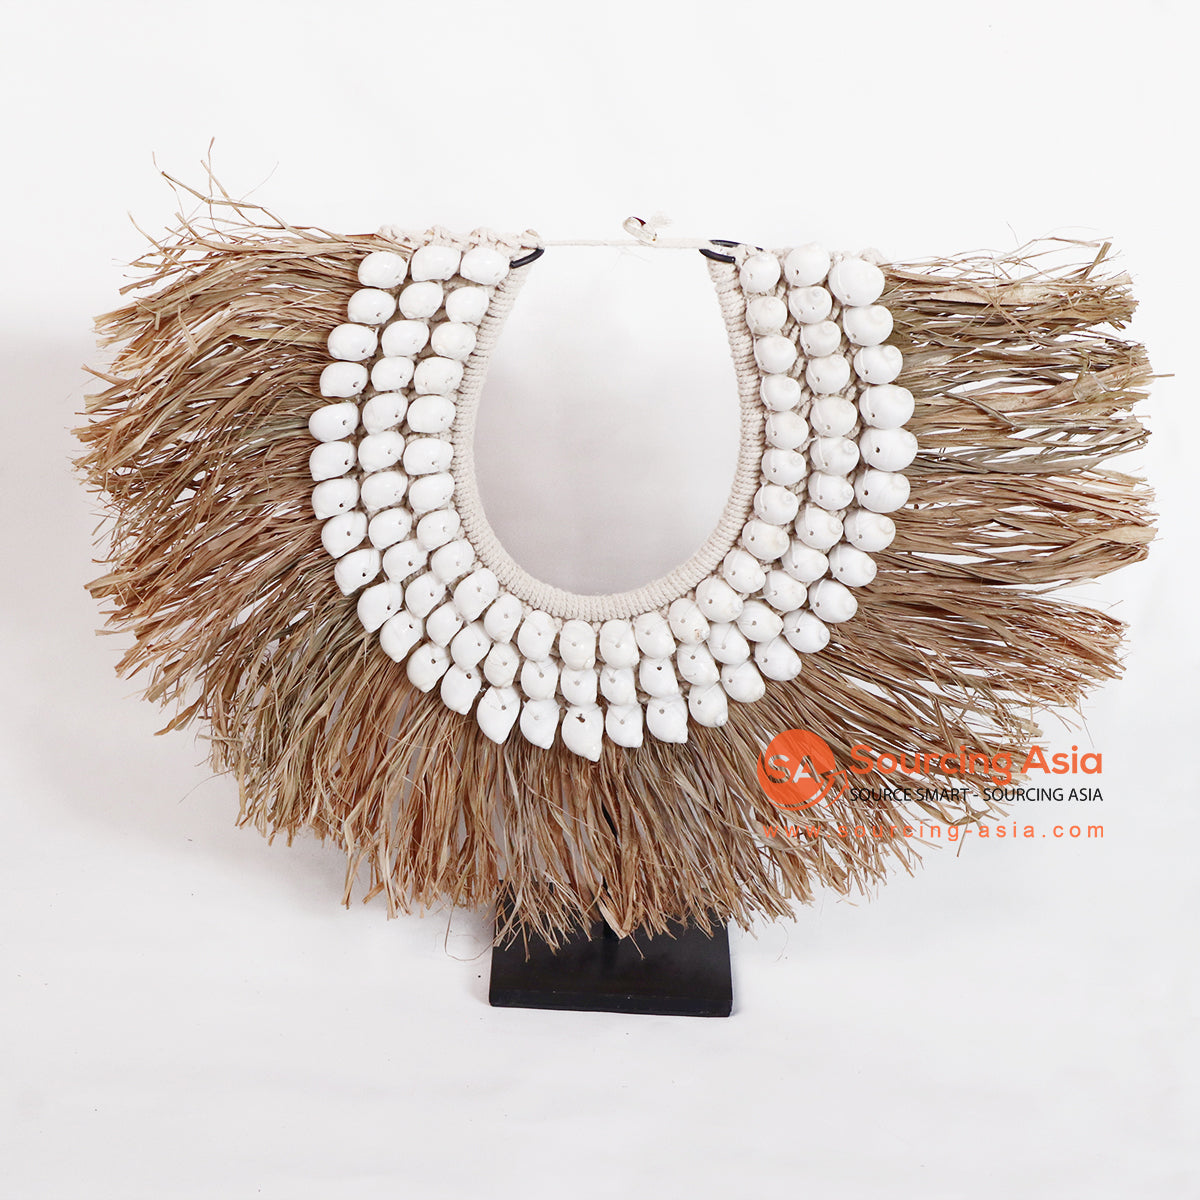 ROB003 NECKLACE WITH SHELL ON STAND